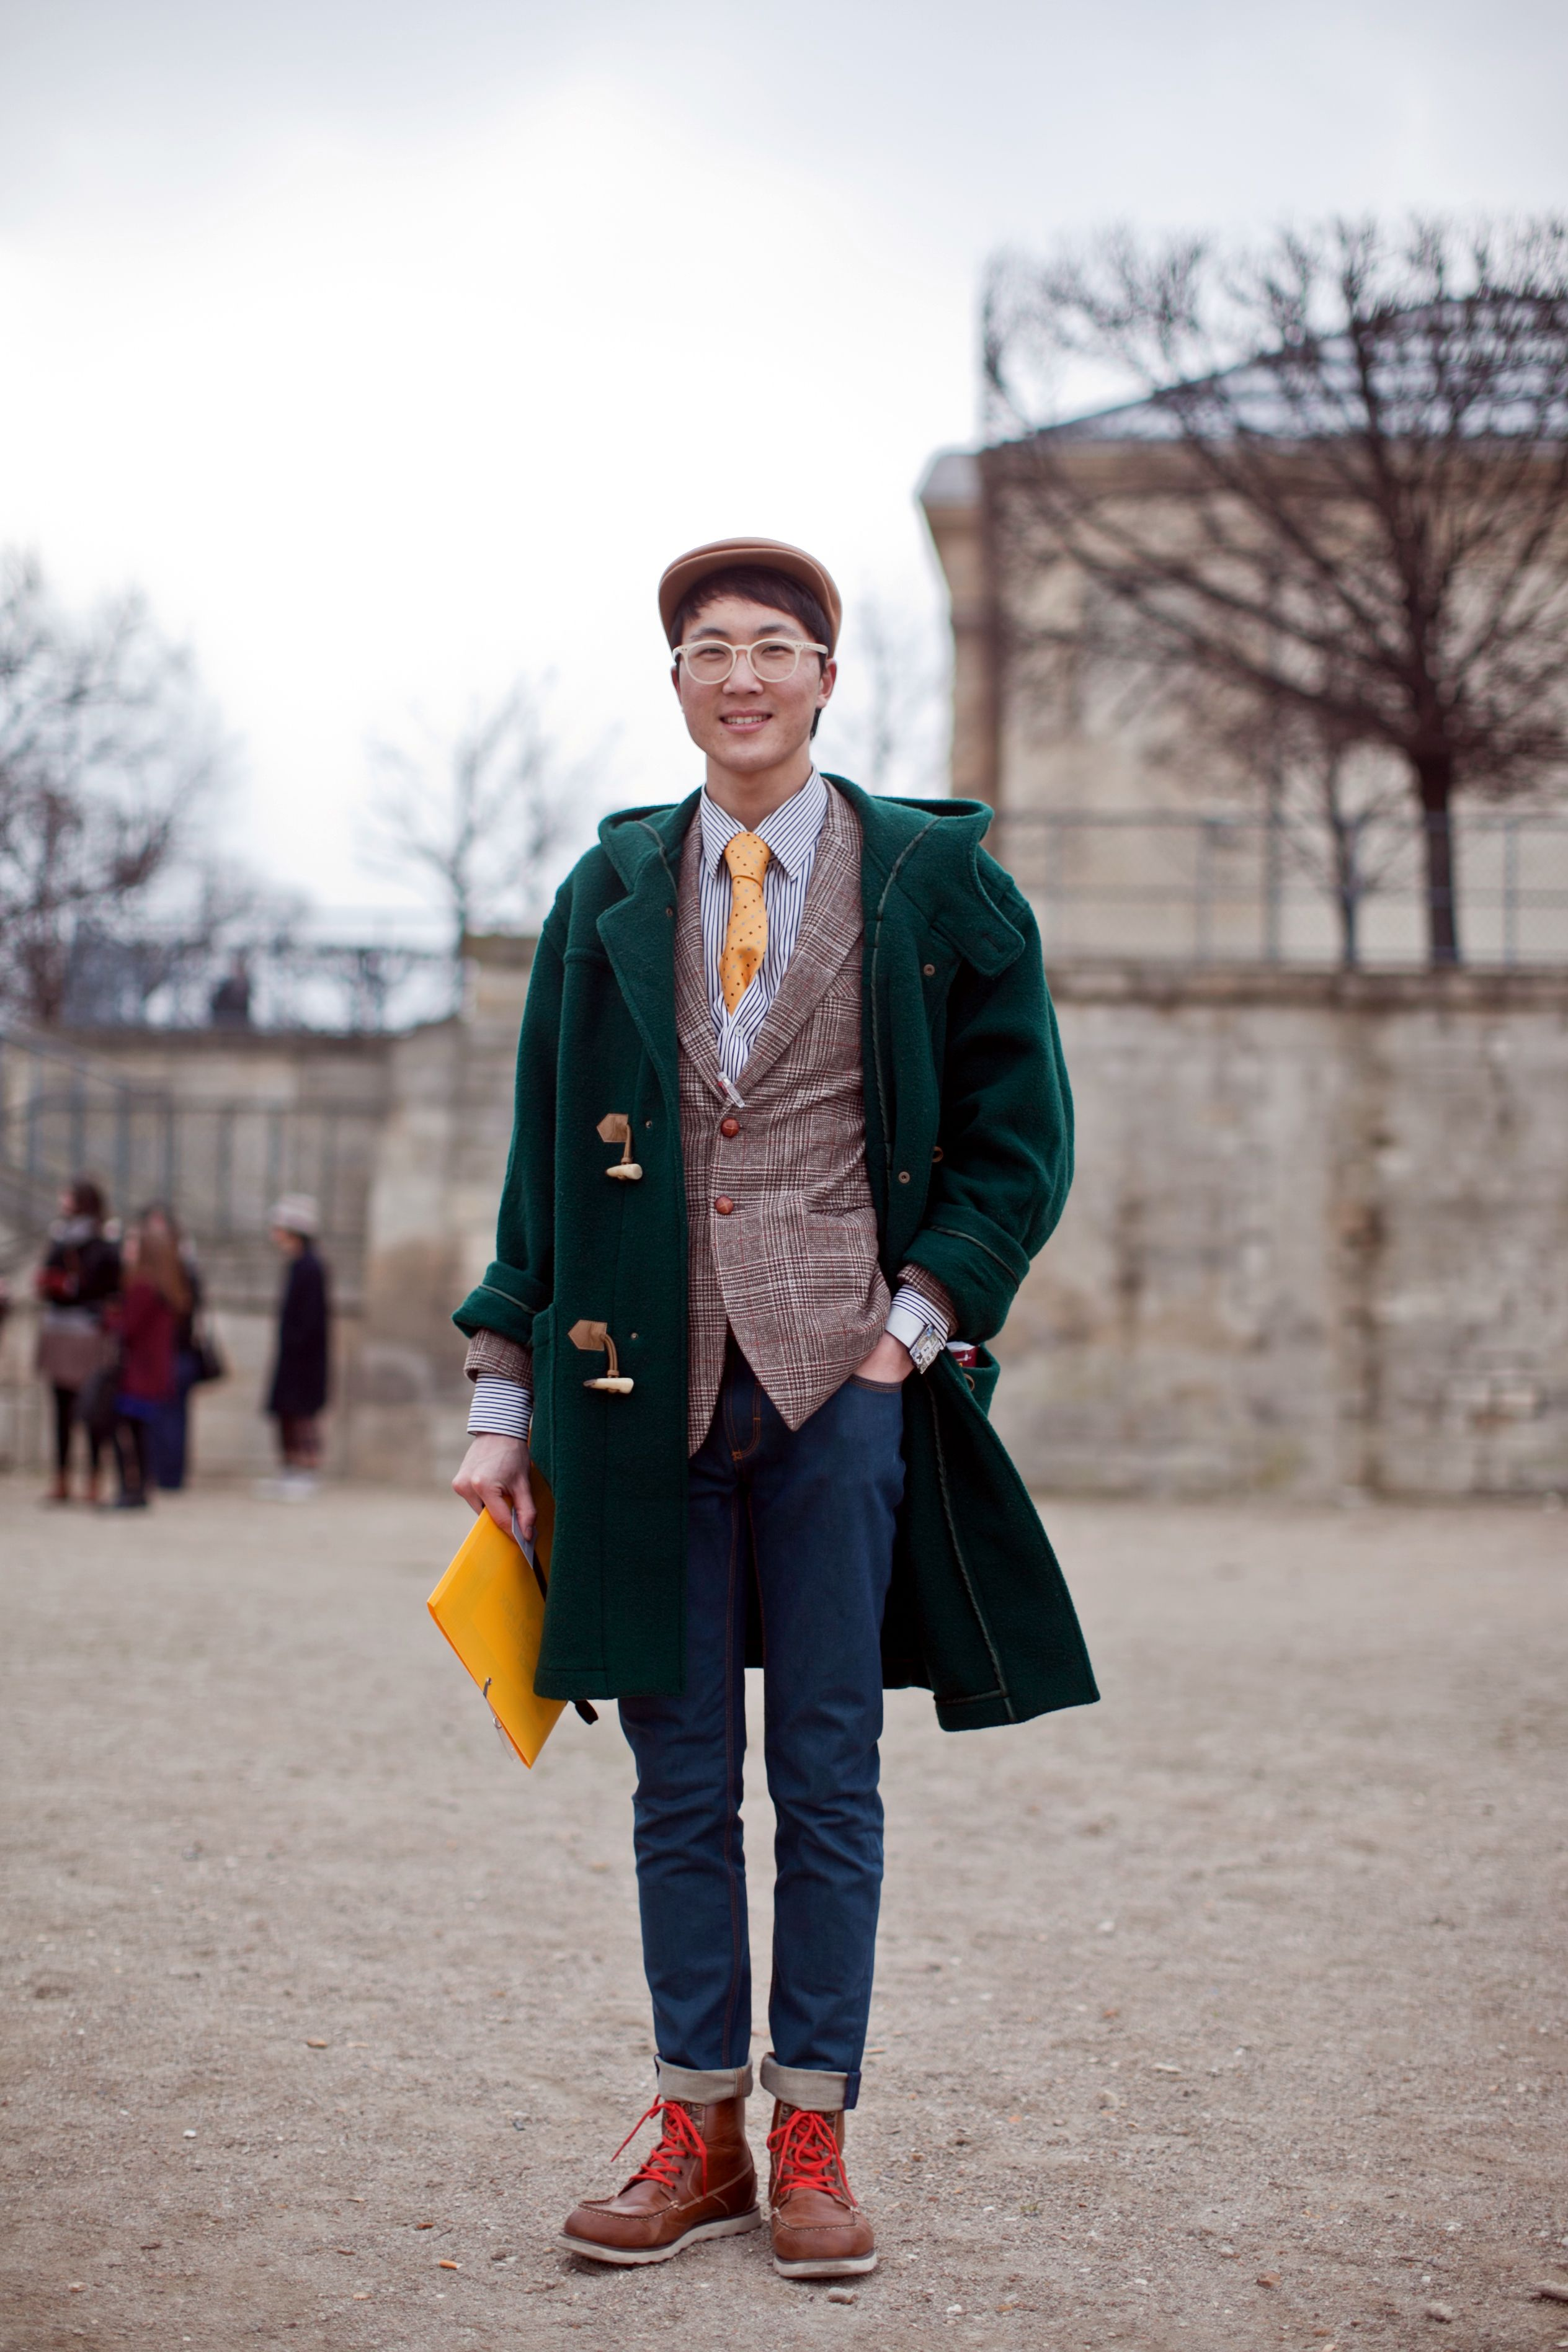 Are These The World's Best Dressed Men? #refinery29 http://www.refinery29.com/mens-fashion-week/street-style#slide38 Team up your folio with your tie to really make a toggle coat/hiking boot combo pop. Photographed by Christian Vierig